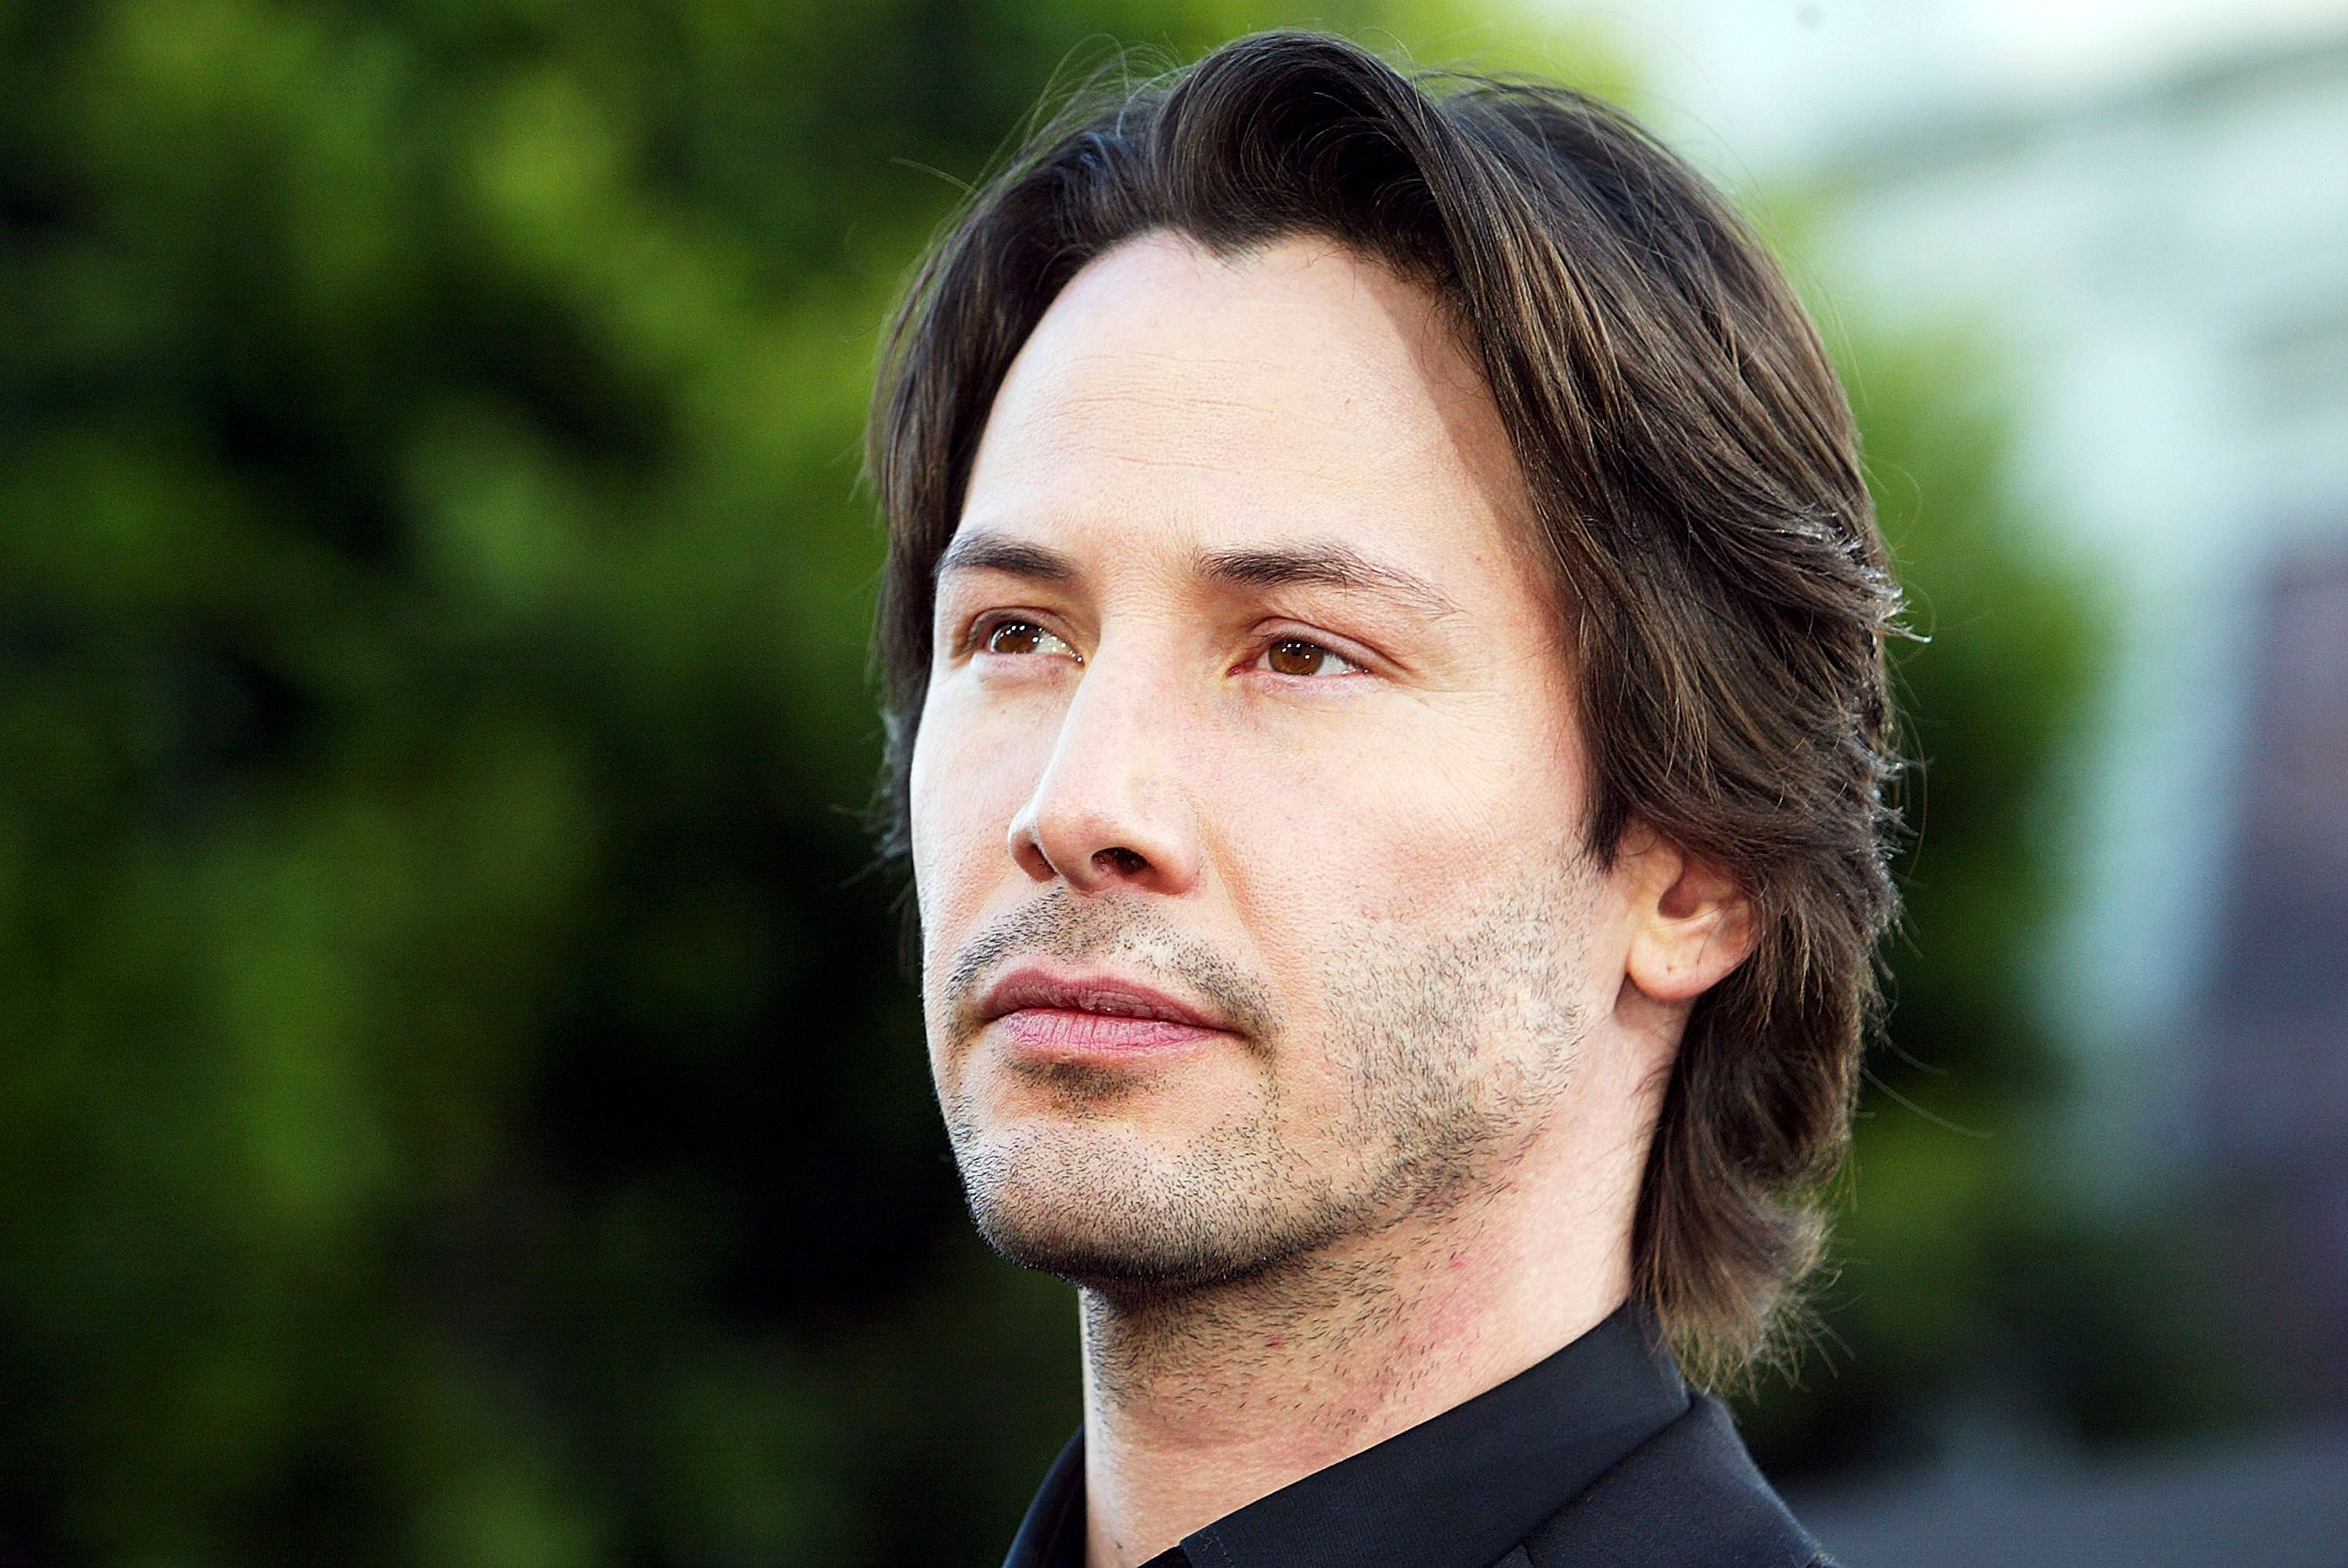 """Keanu Reeves at the premiere of """"The Matrix Reloaded"""" at the Village Theater on May 7, 2003, in Los Angeles, California   Photo: Kevin Winter/Getty Images"""